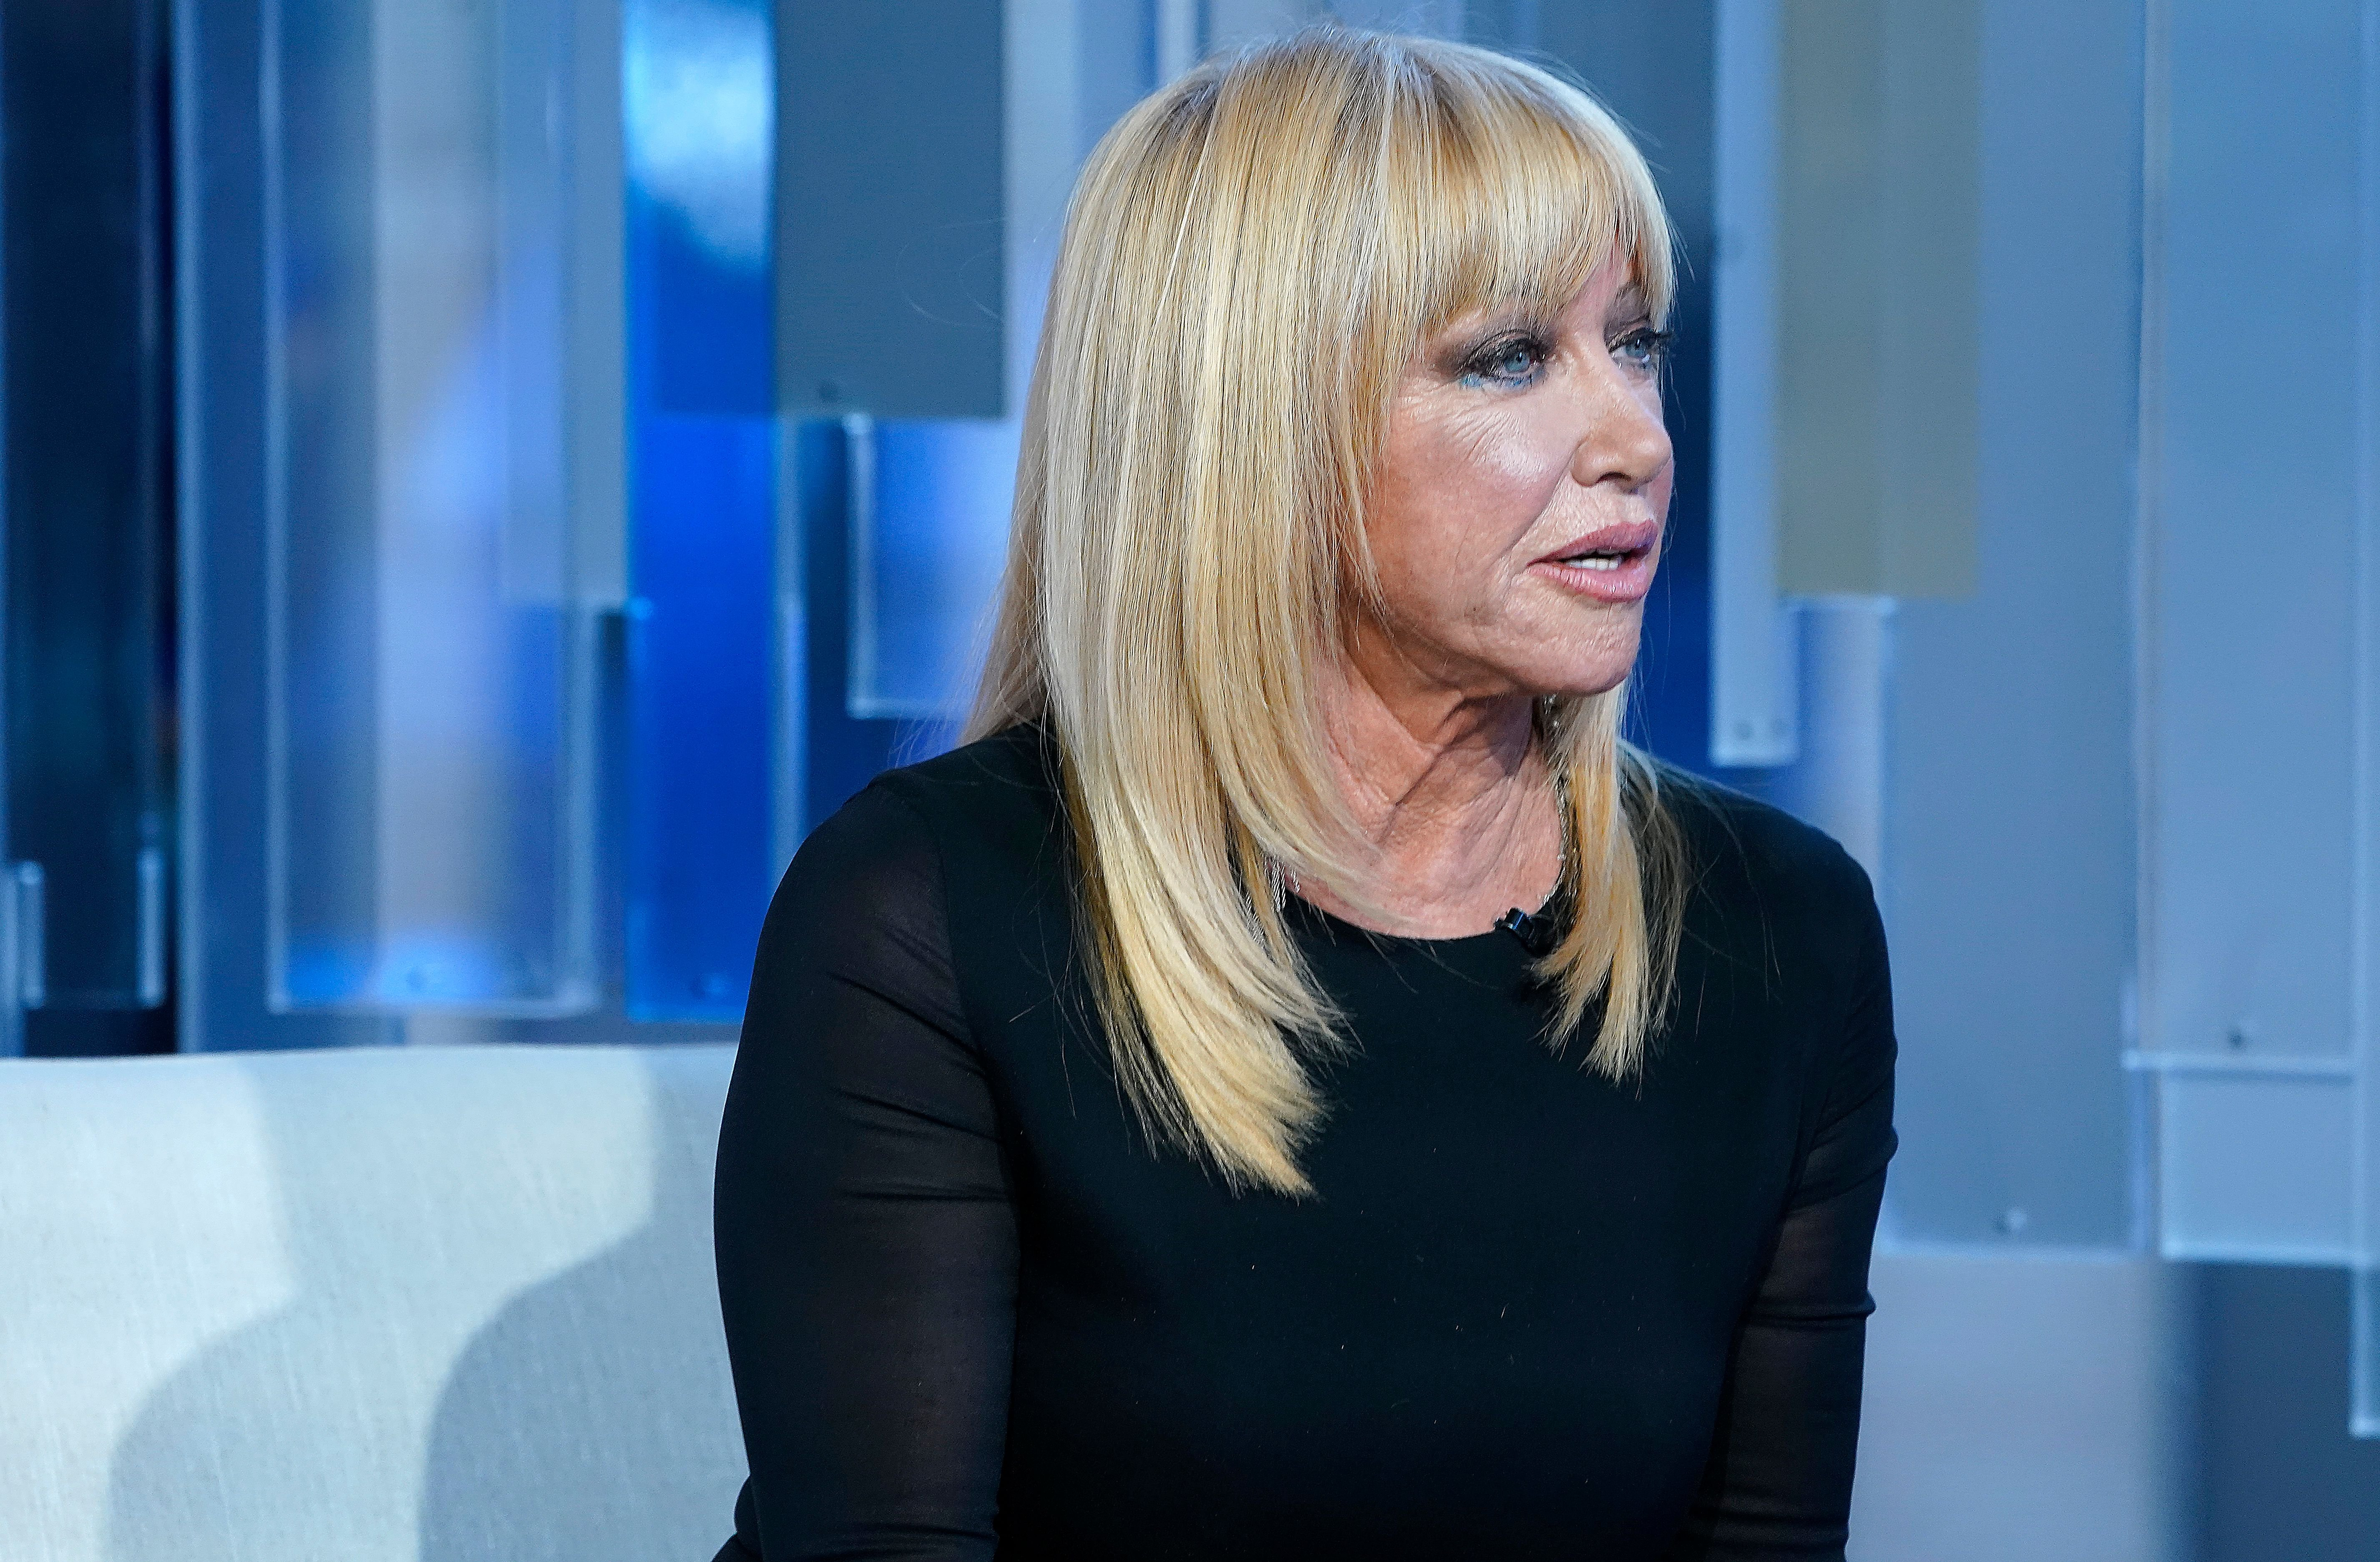 Suzanne Somers in an interview at Fox Business Network Studios on January 09, 2020 in New York City | Photo: Getty Images